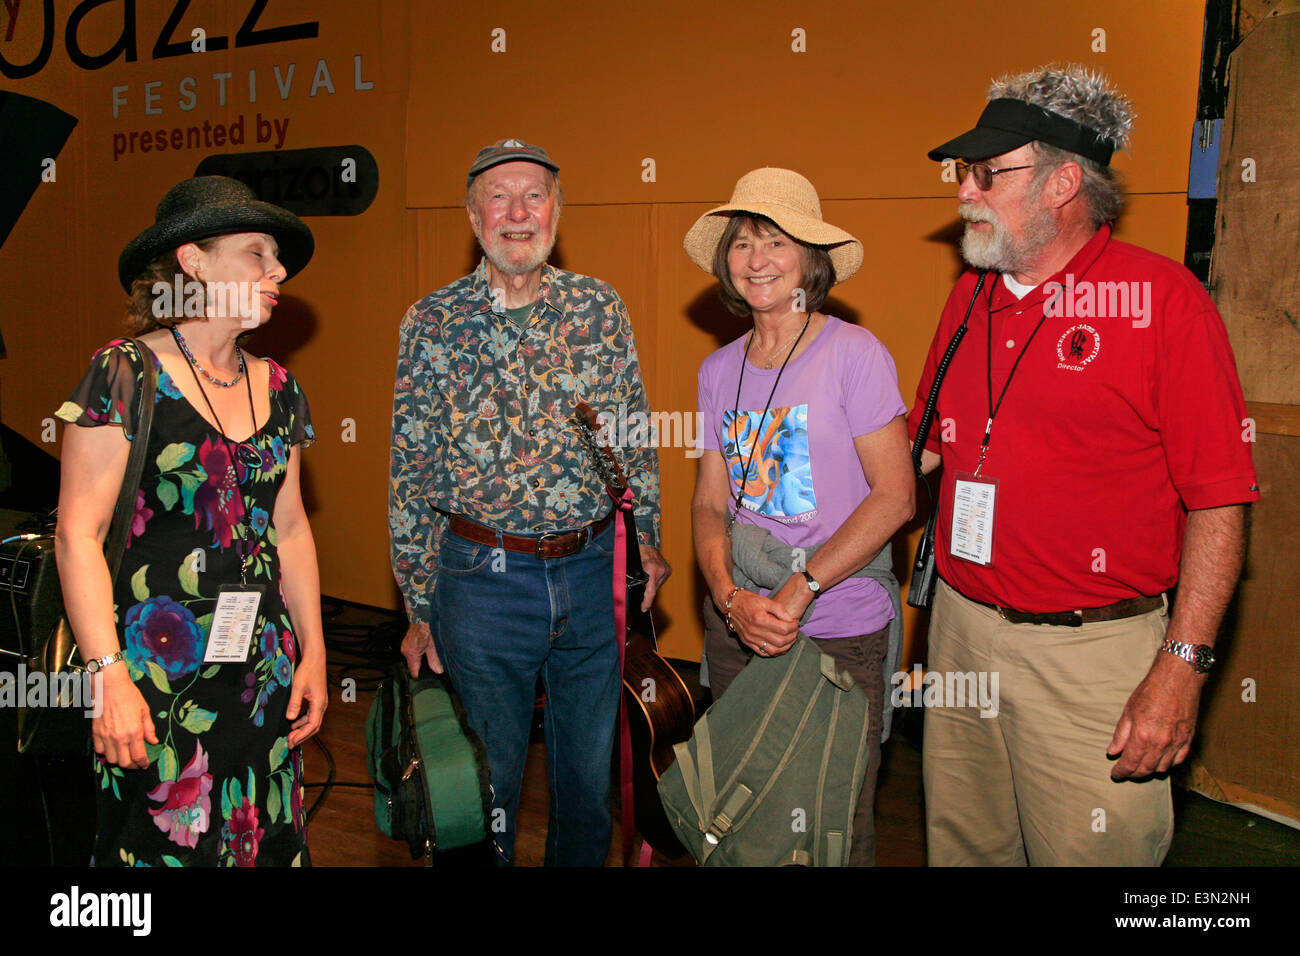 PETE SEEGER backstage at the 2009 MONTEREY JAZZ FESTIVAL - CALIFORNIA - Stock Image